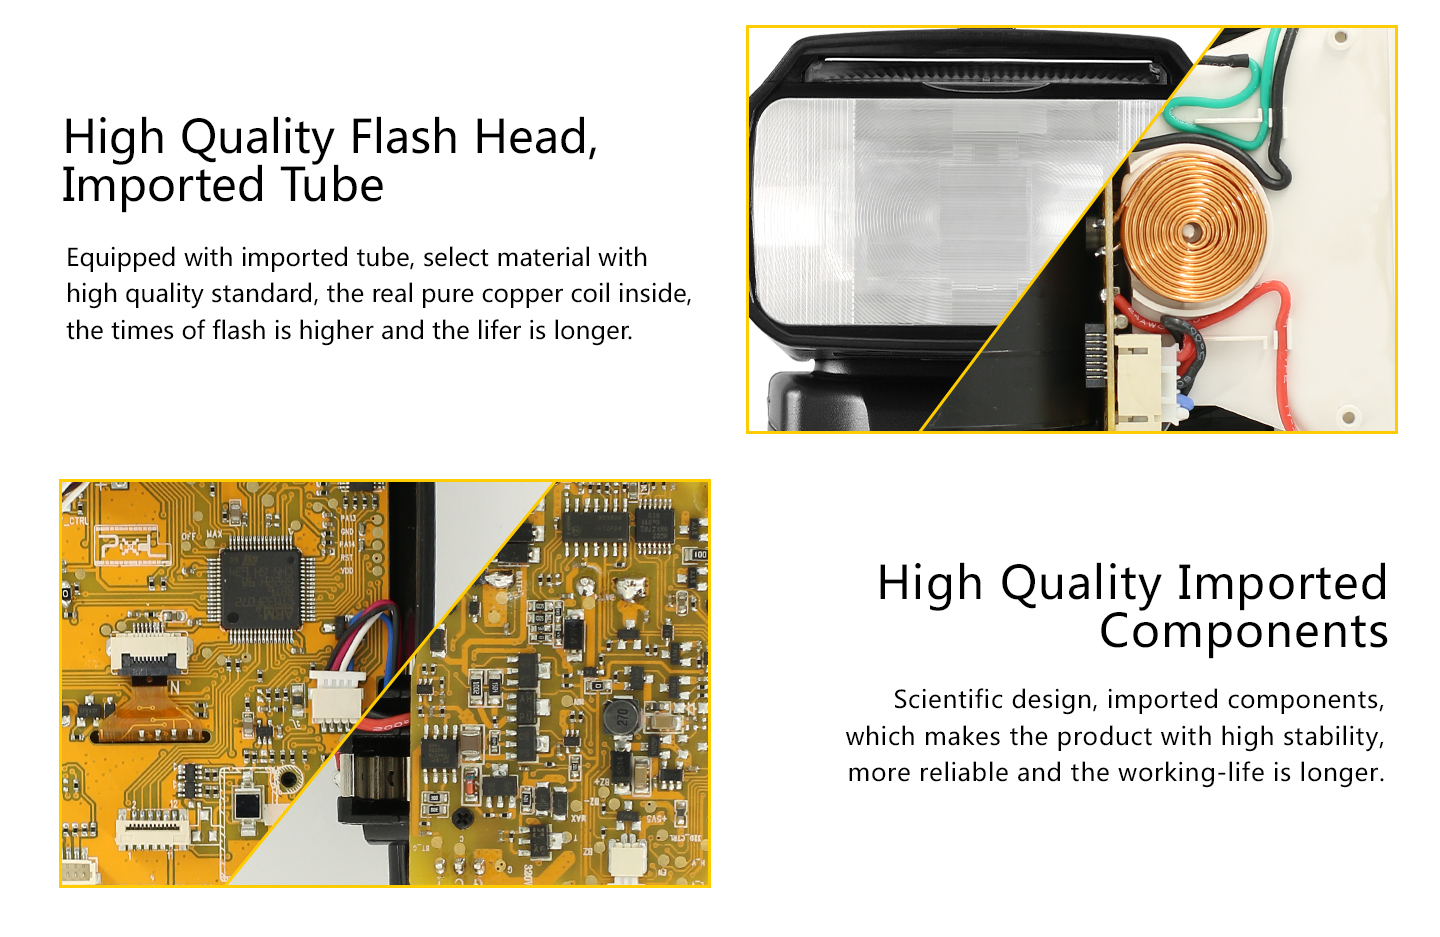 High Quality Flash Head, Imported Tube, High Quality Imported Components